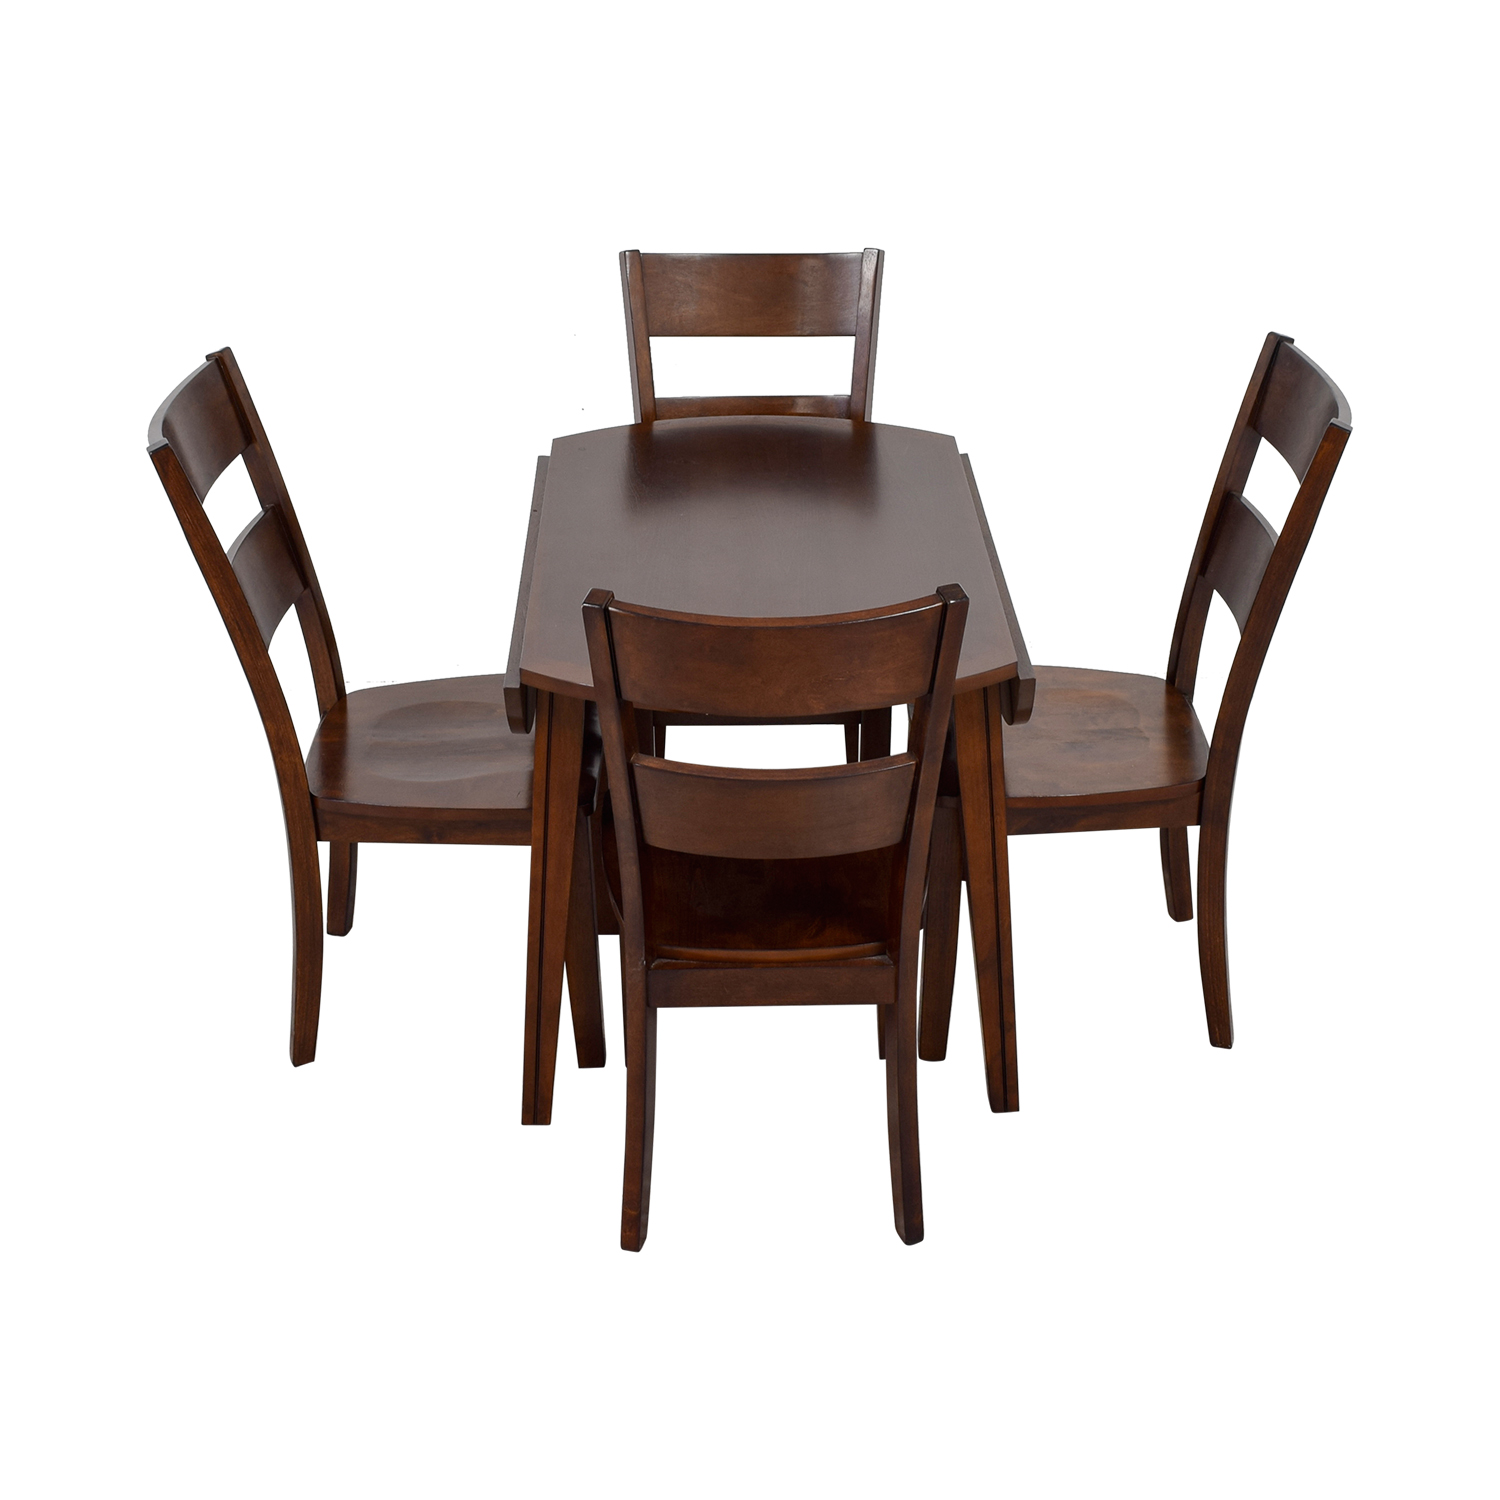 Merveilleux Bobu0027s Furniture Drop Leaf Dining Set Bobu0027s Furniture